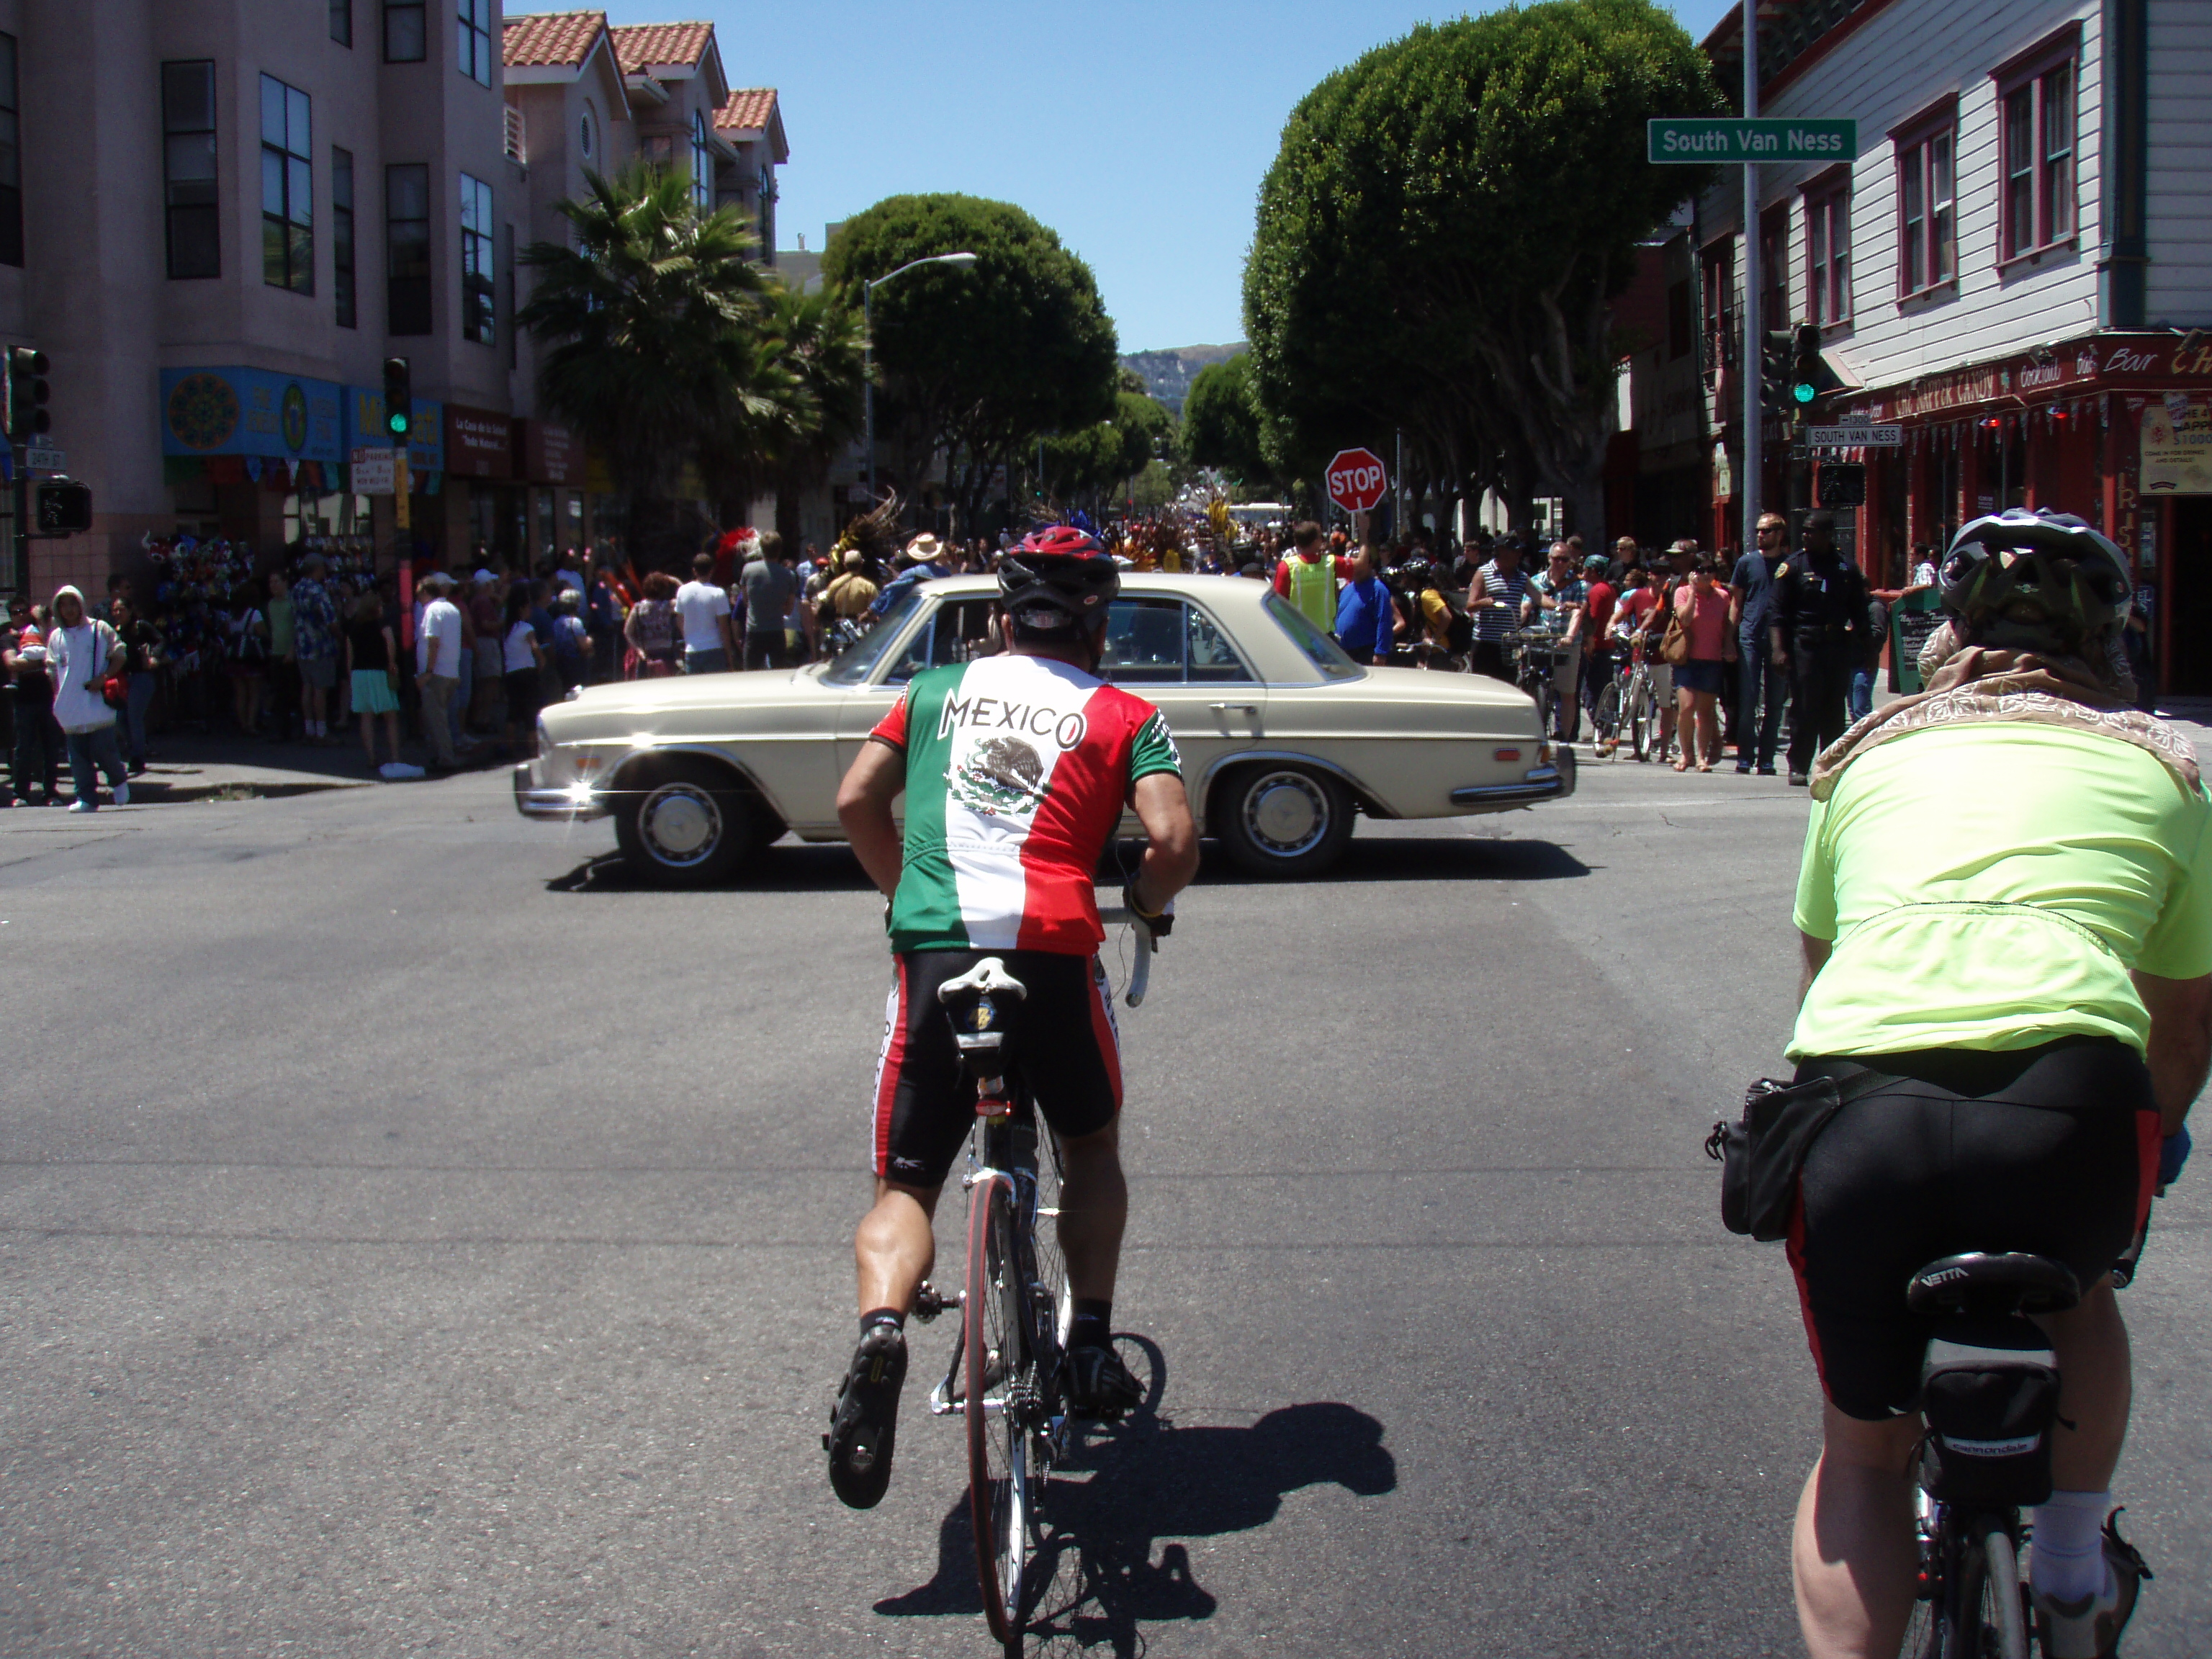 One cyclist had the style and swagger of a champion.  If he showed up to <i>any</i> alleycat or Soil Saloon with his full Mexico kit, he'd receive an honorary award just for being a complete badass.